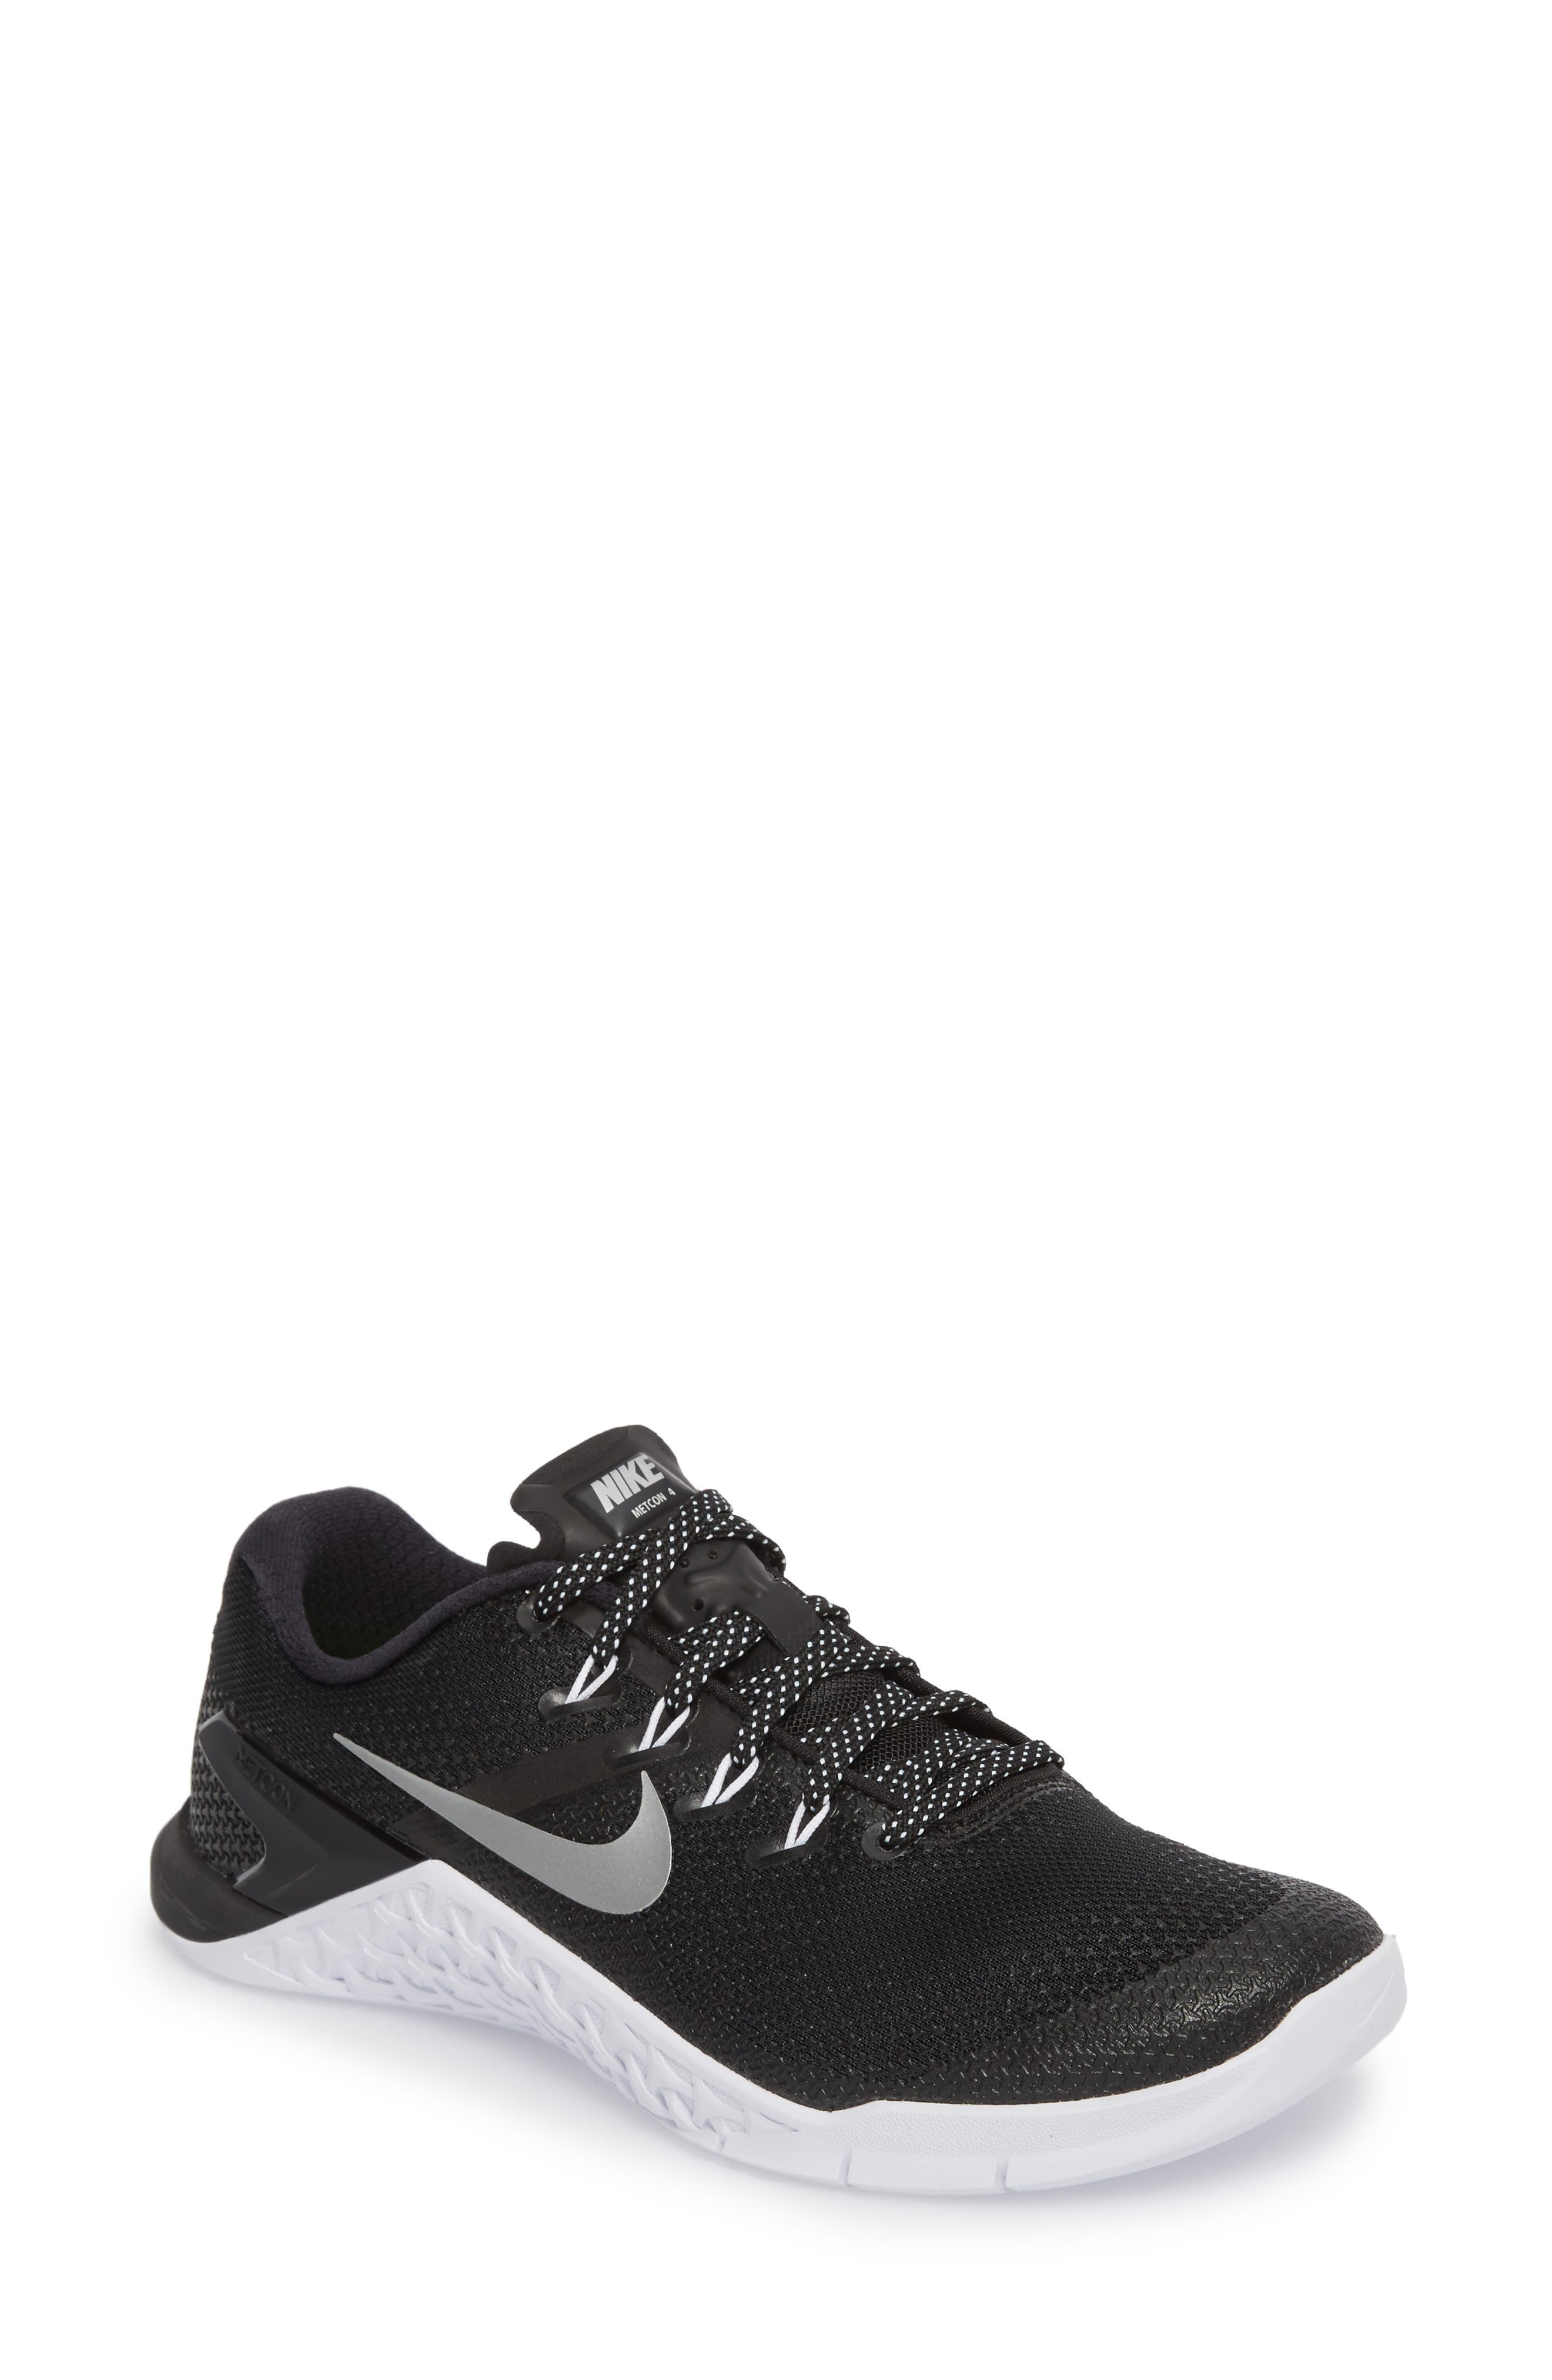 Metcon 4 Training Shoe,                             Main thumbnail 1, color,